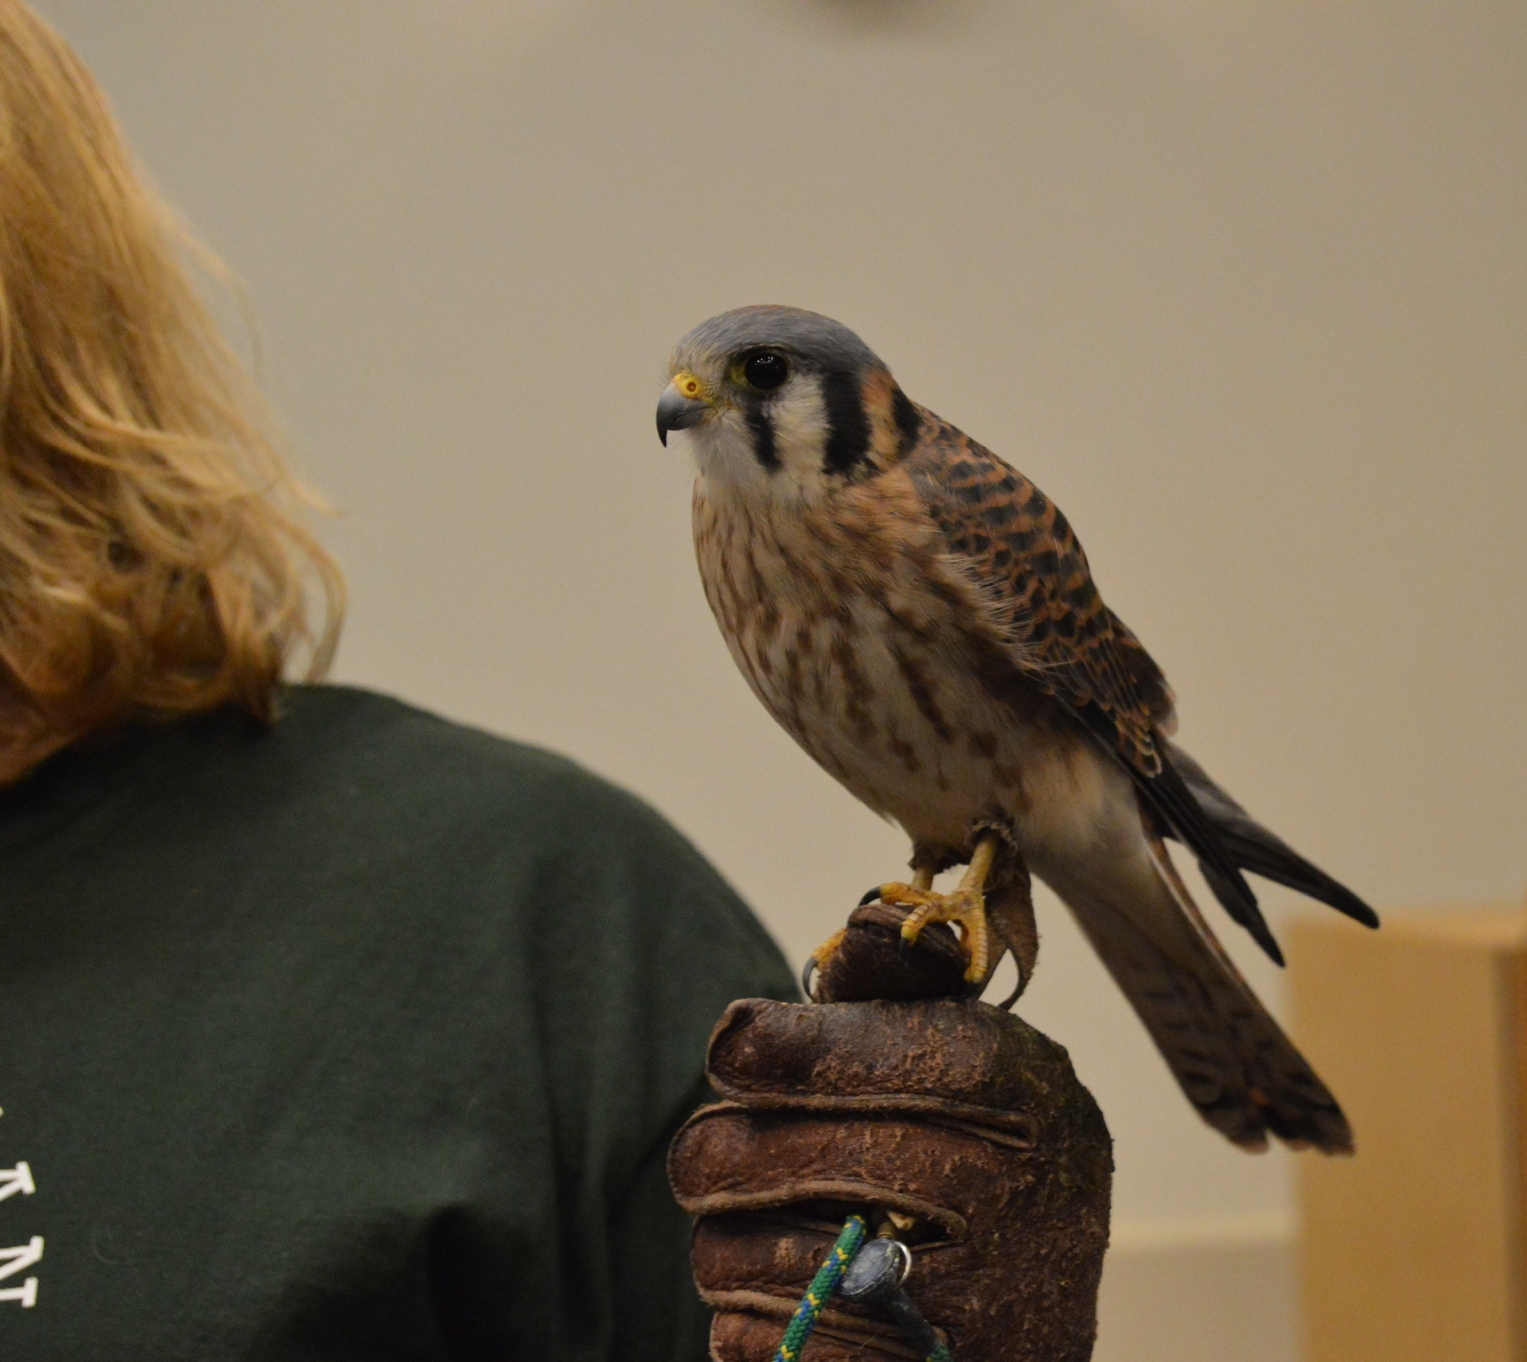 An American kestrel introduced during one of HMANA's presentations.